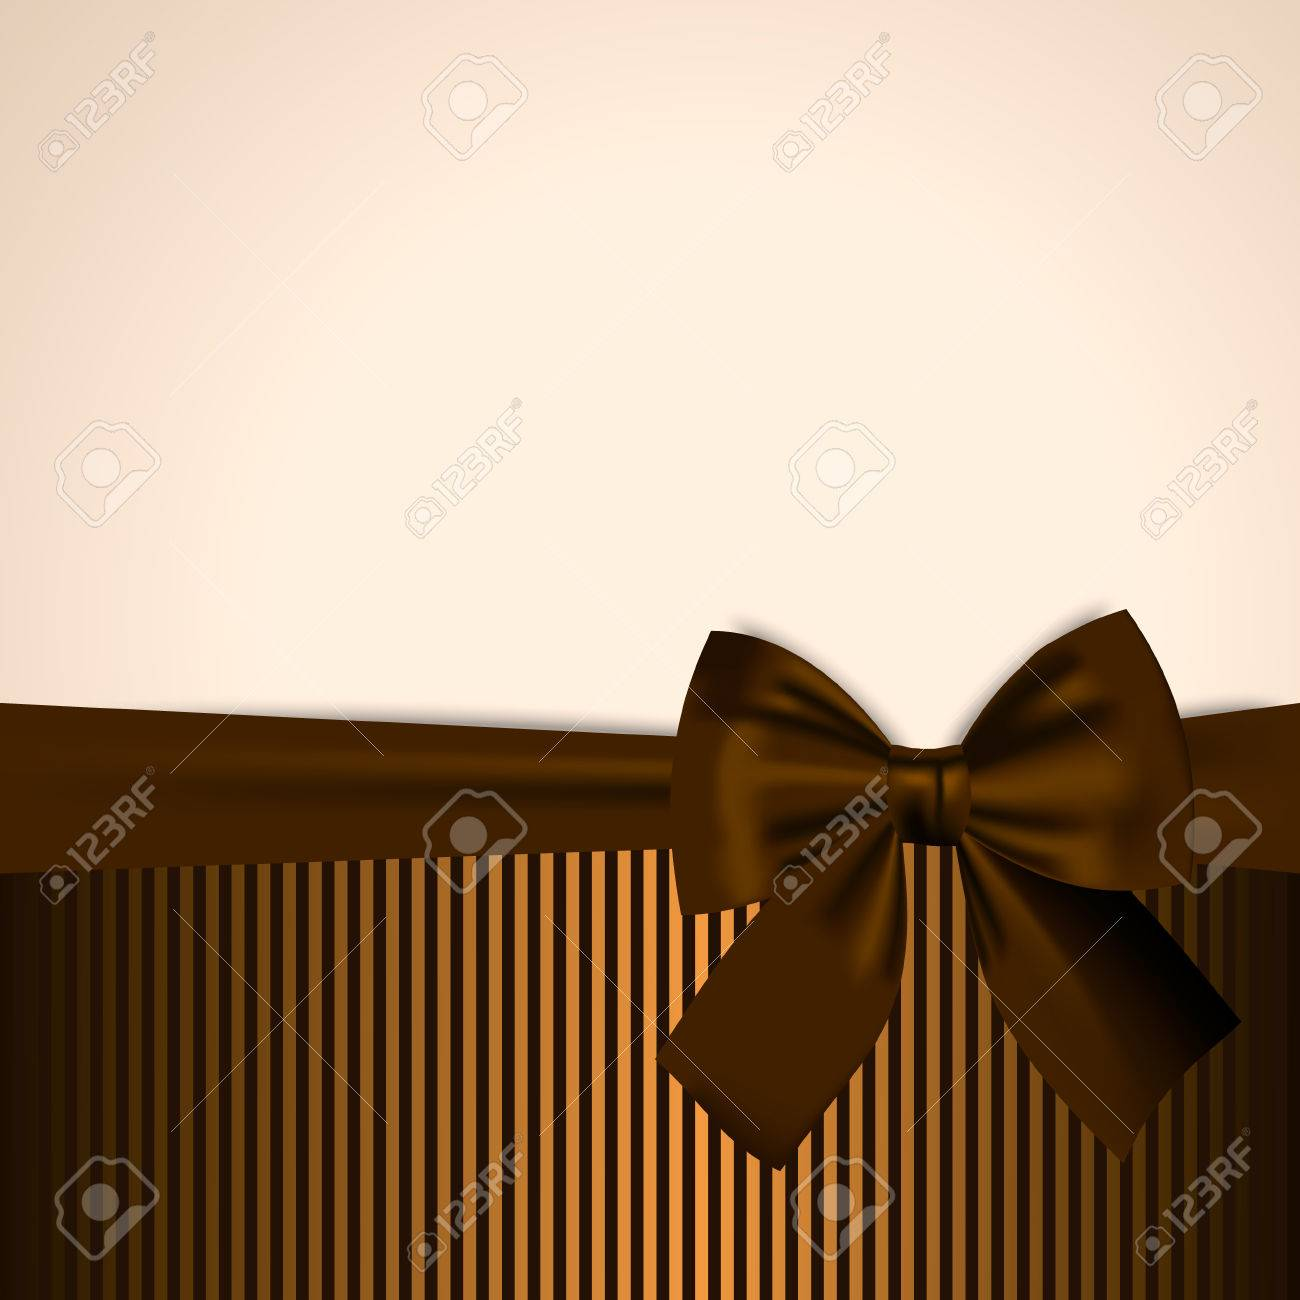 Brown and golden Postcard Invitation Gift Card Banner Template Background with realistic bow - 31504743